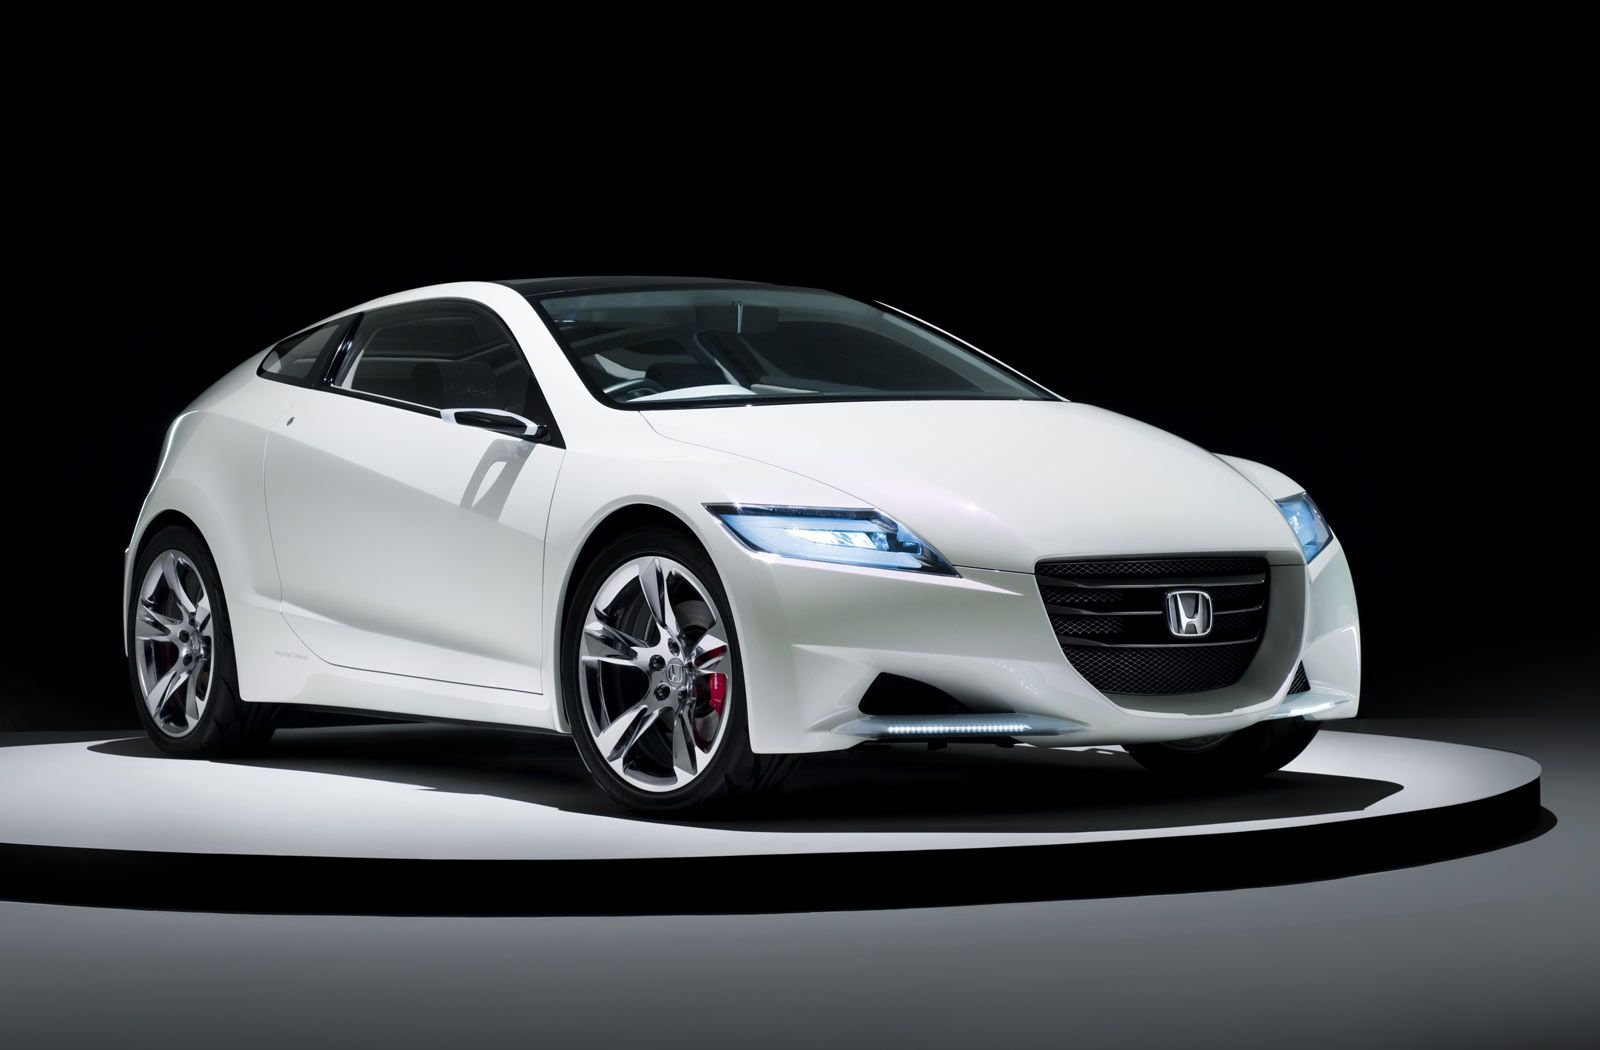 2015 honda cr z hybrid wallpaper hd 2015hondacrzhybrid honda wallpaperhd